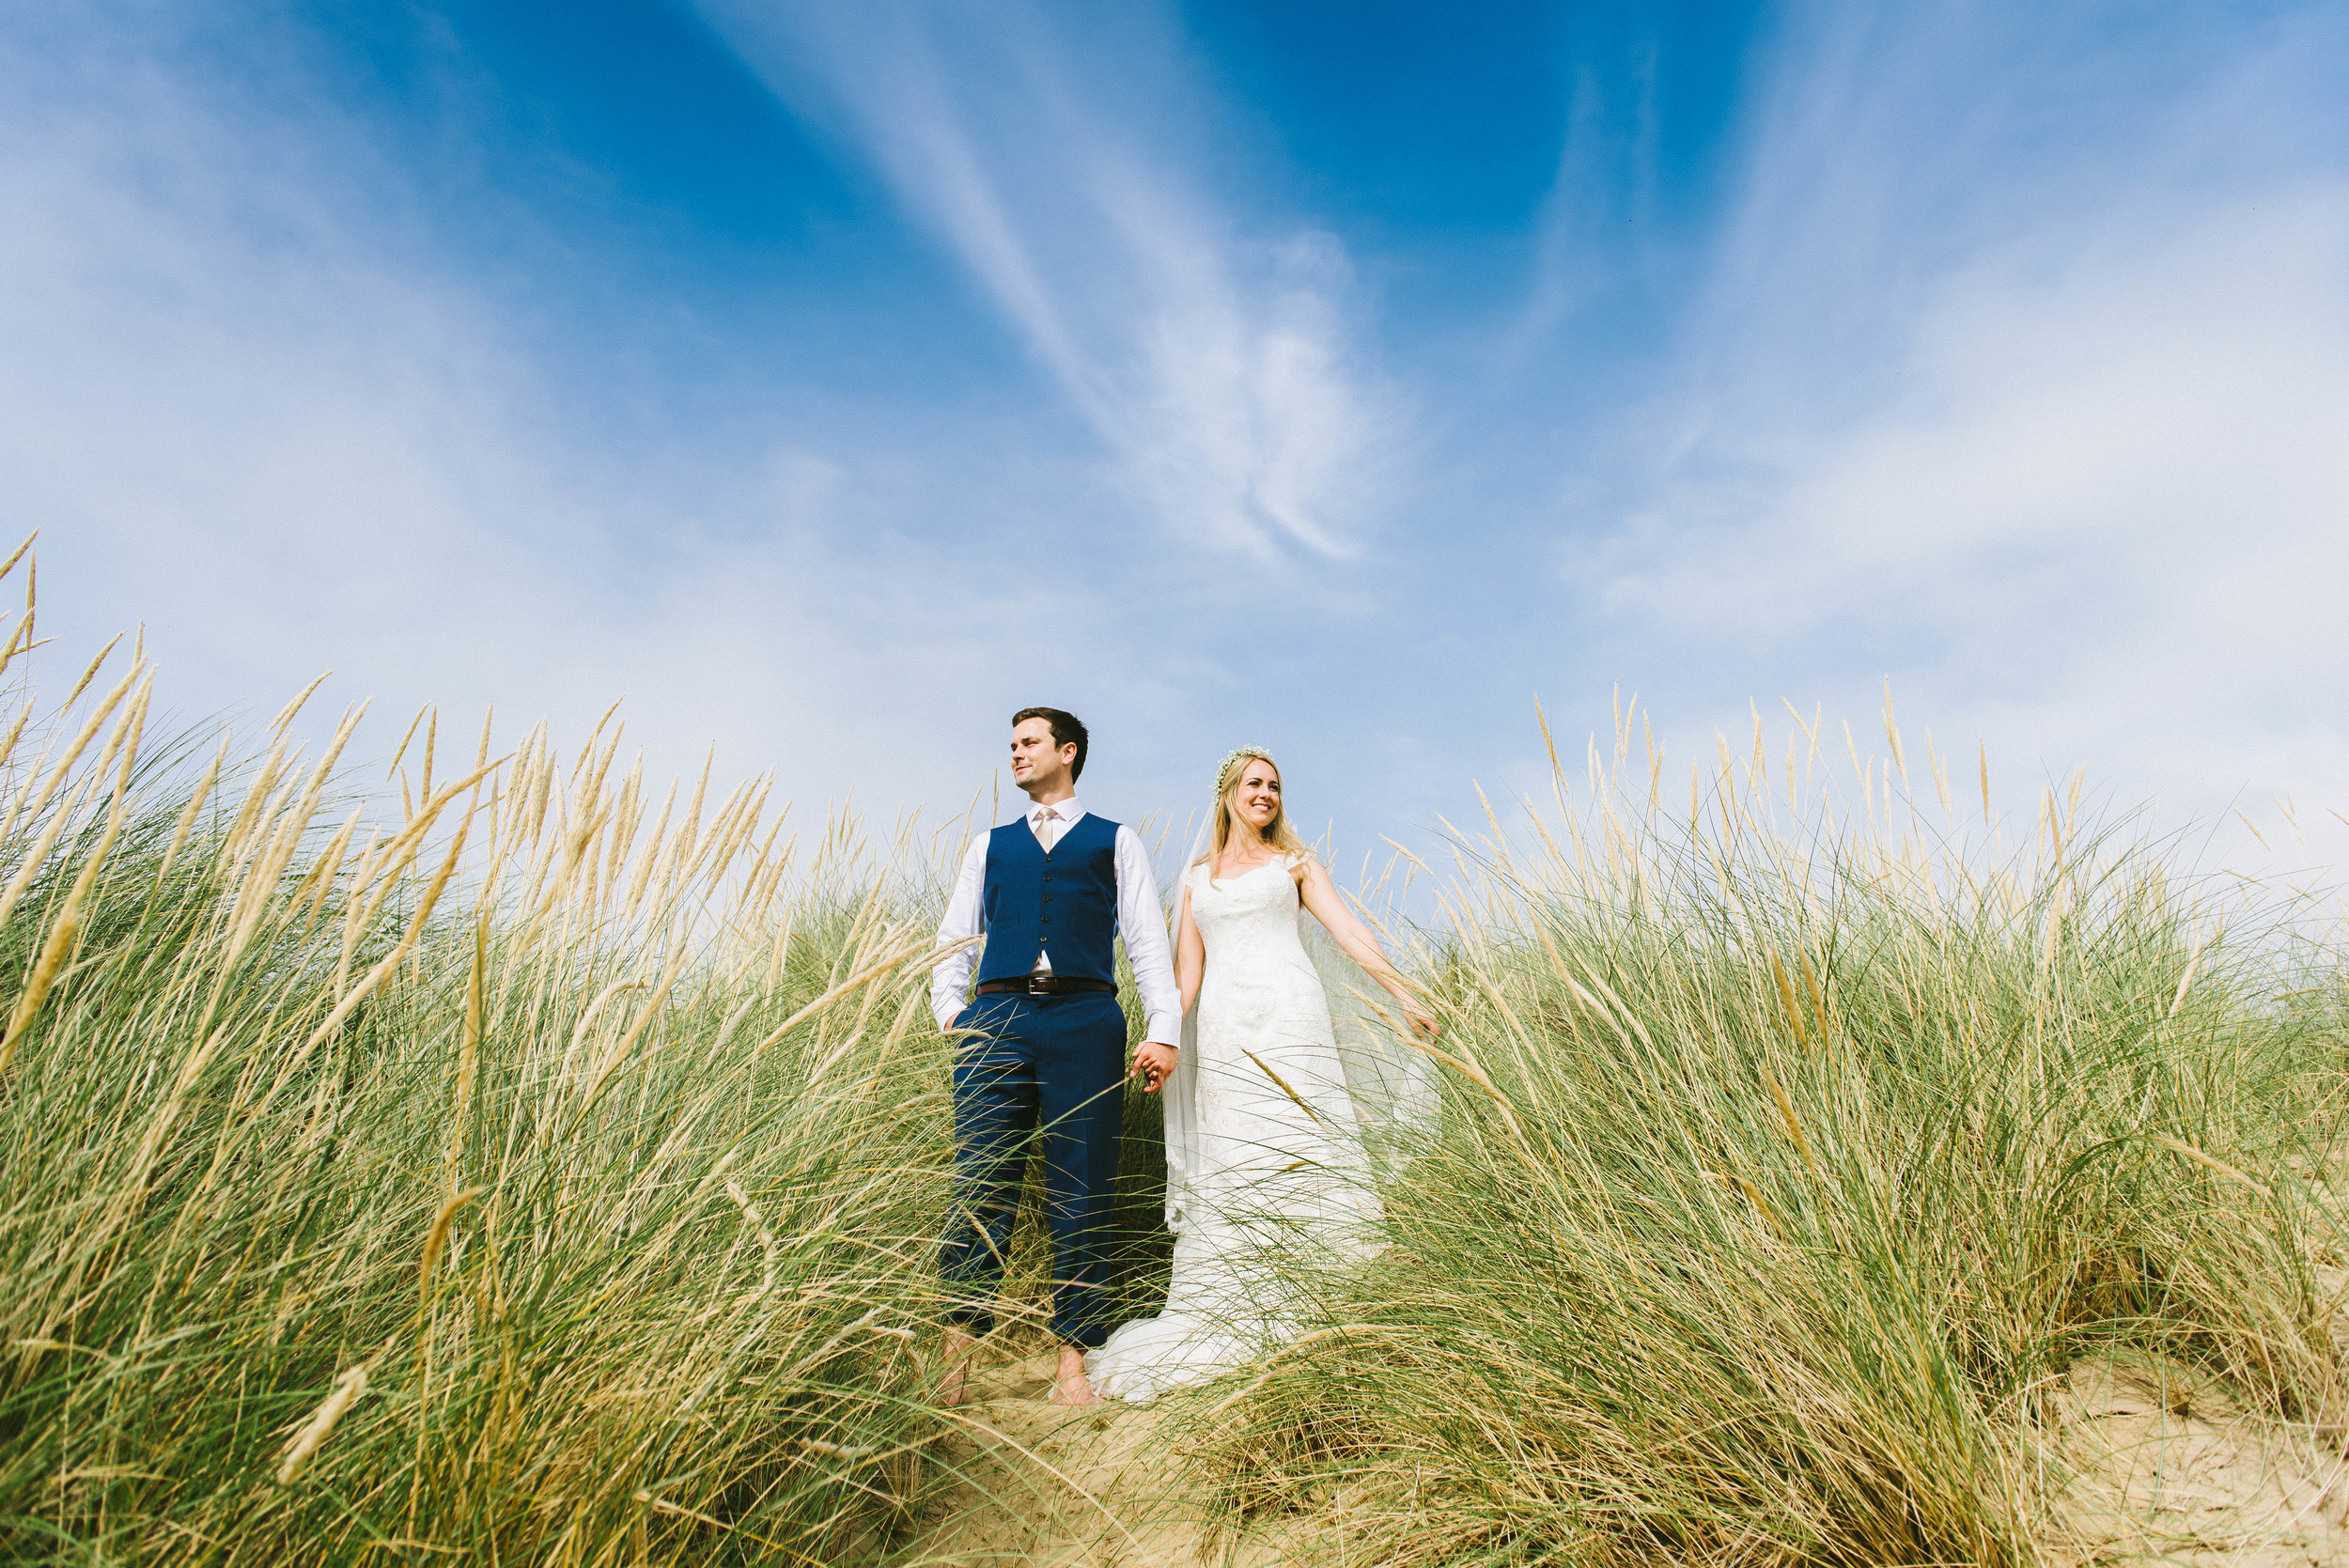 East Sussex wedding at the Gallivant in Camber Sands - Steph + Graham